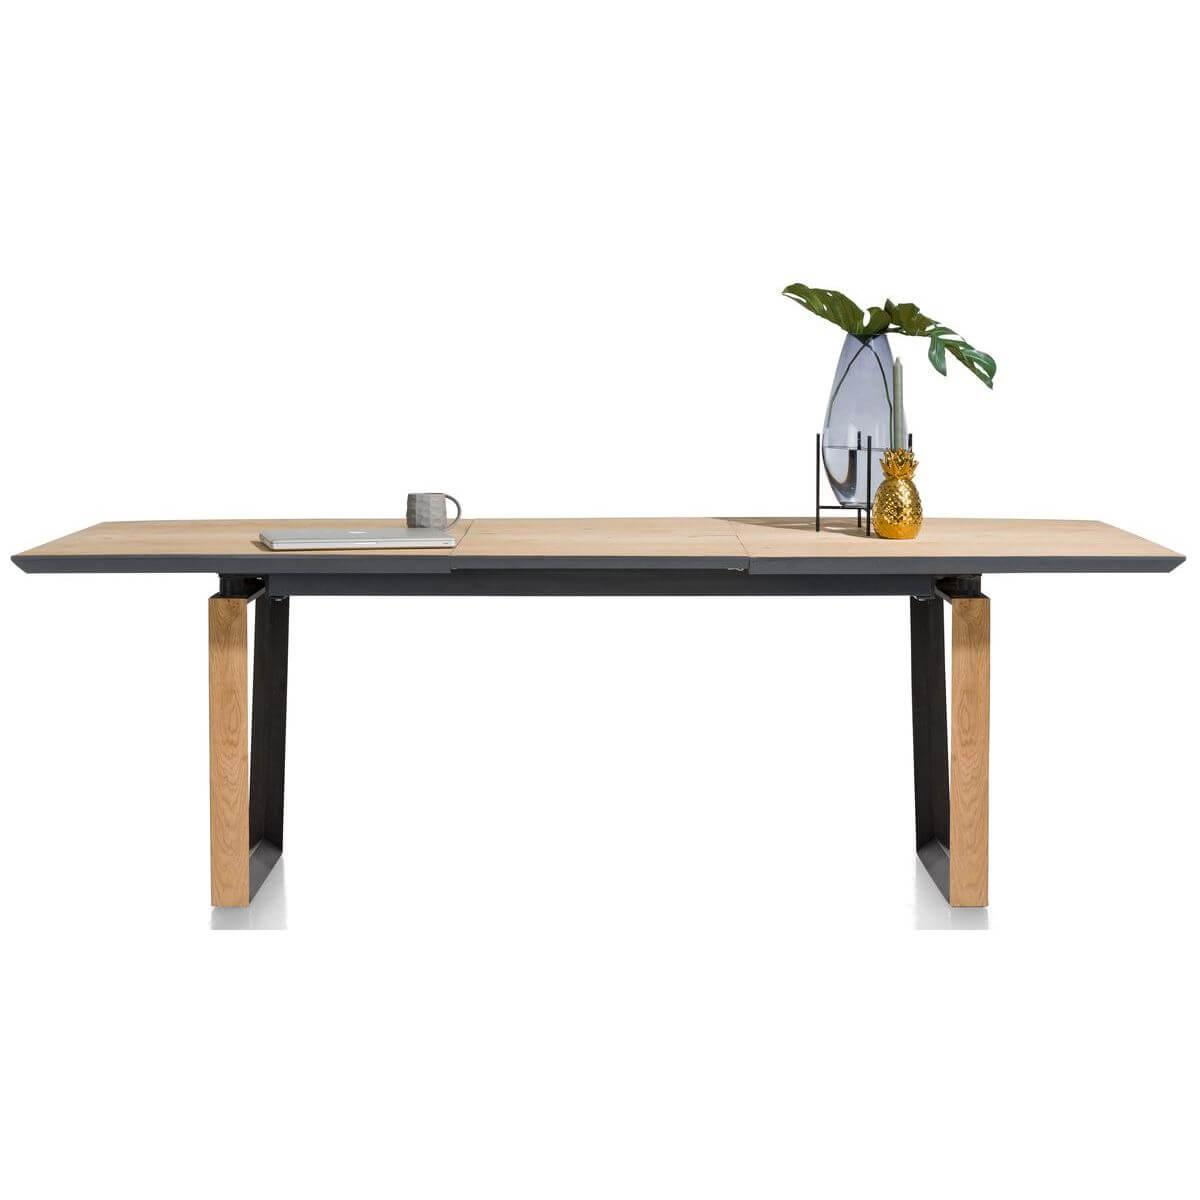 Table rallonge 160x220cm DARWIN Xooon